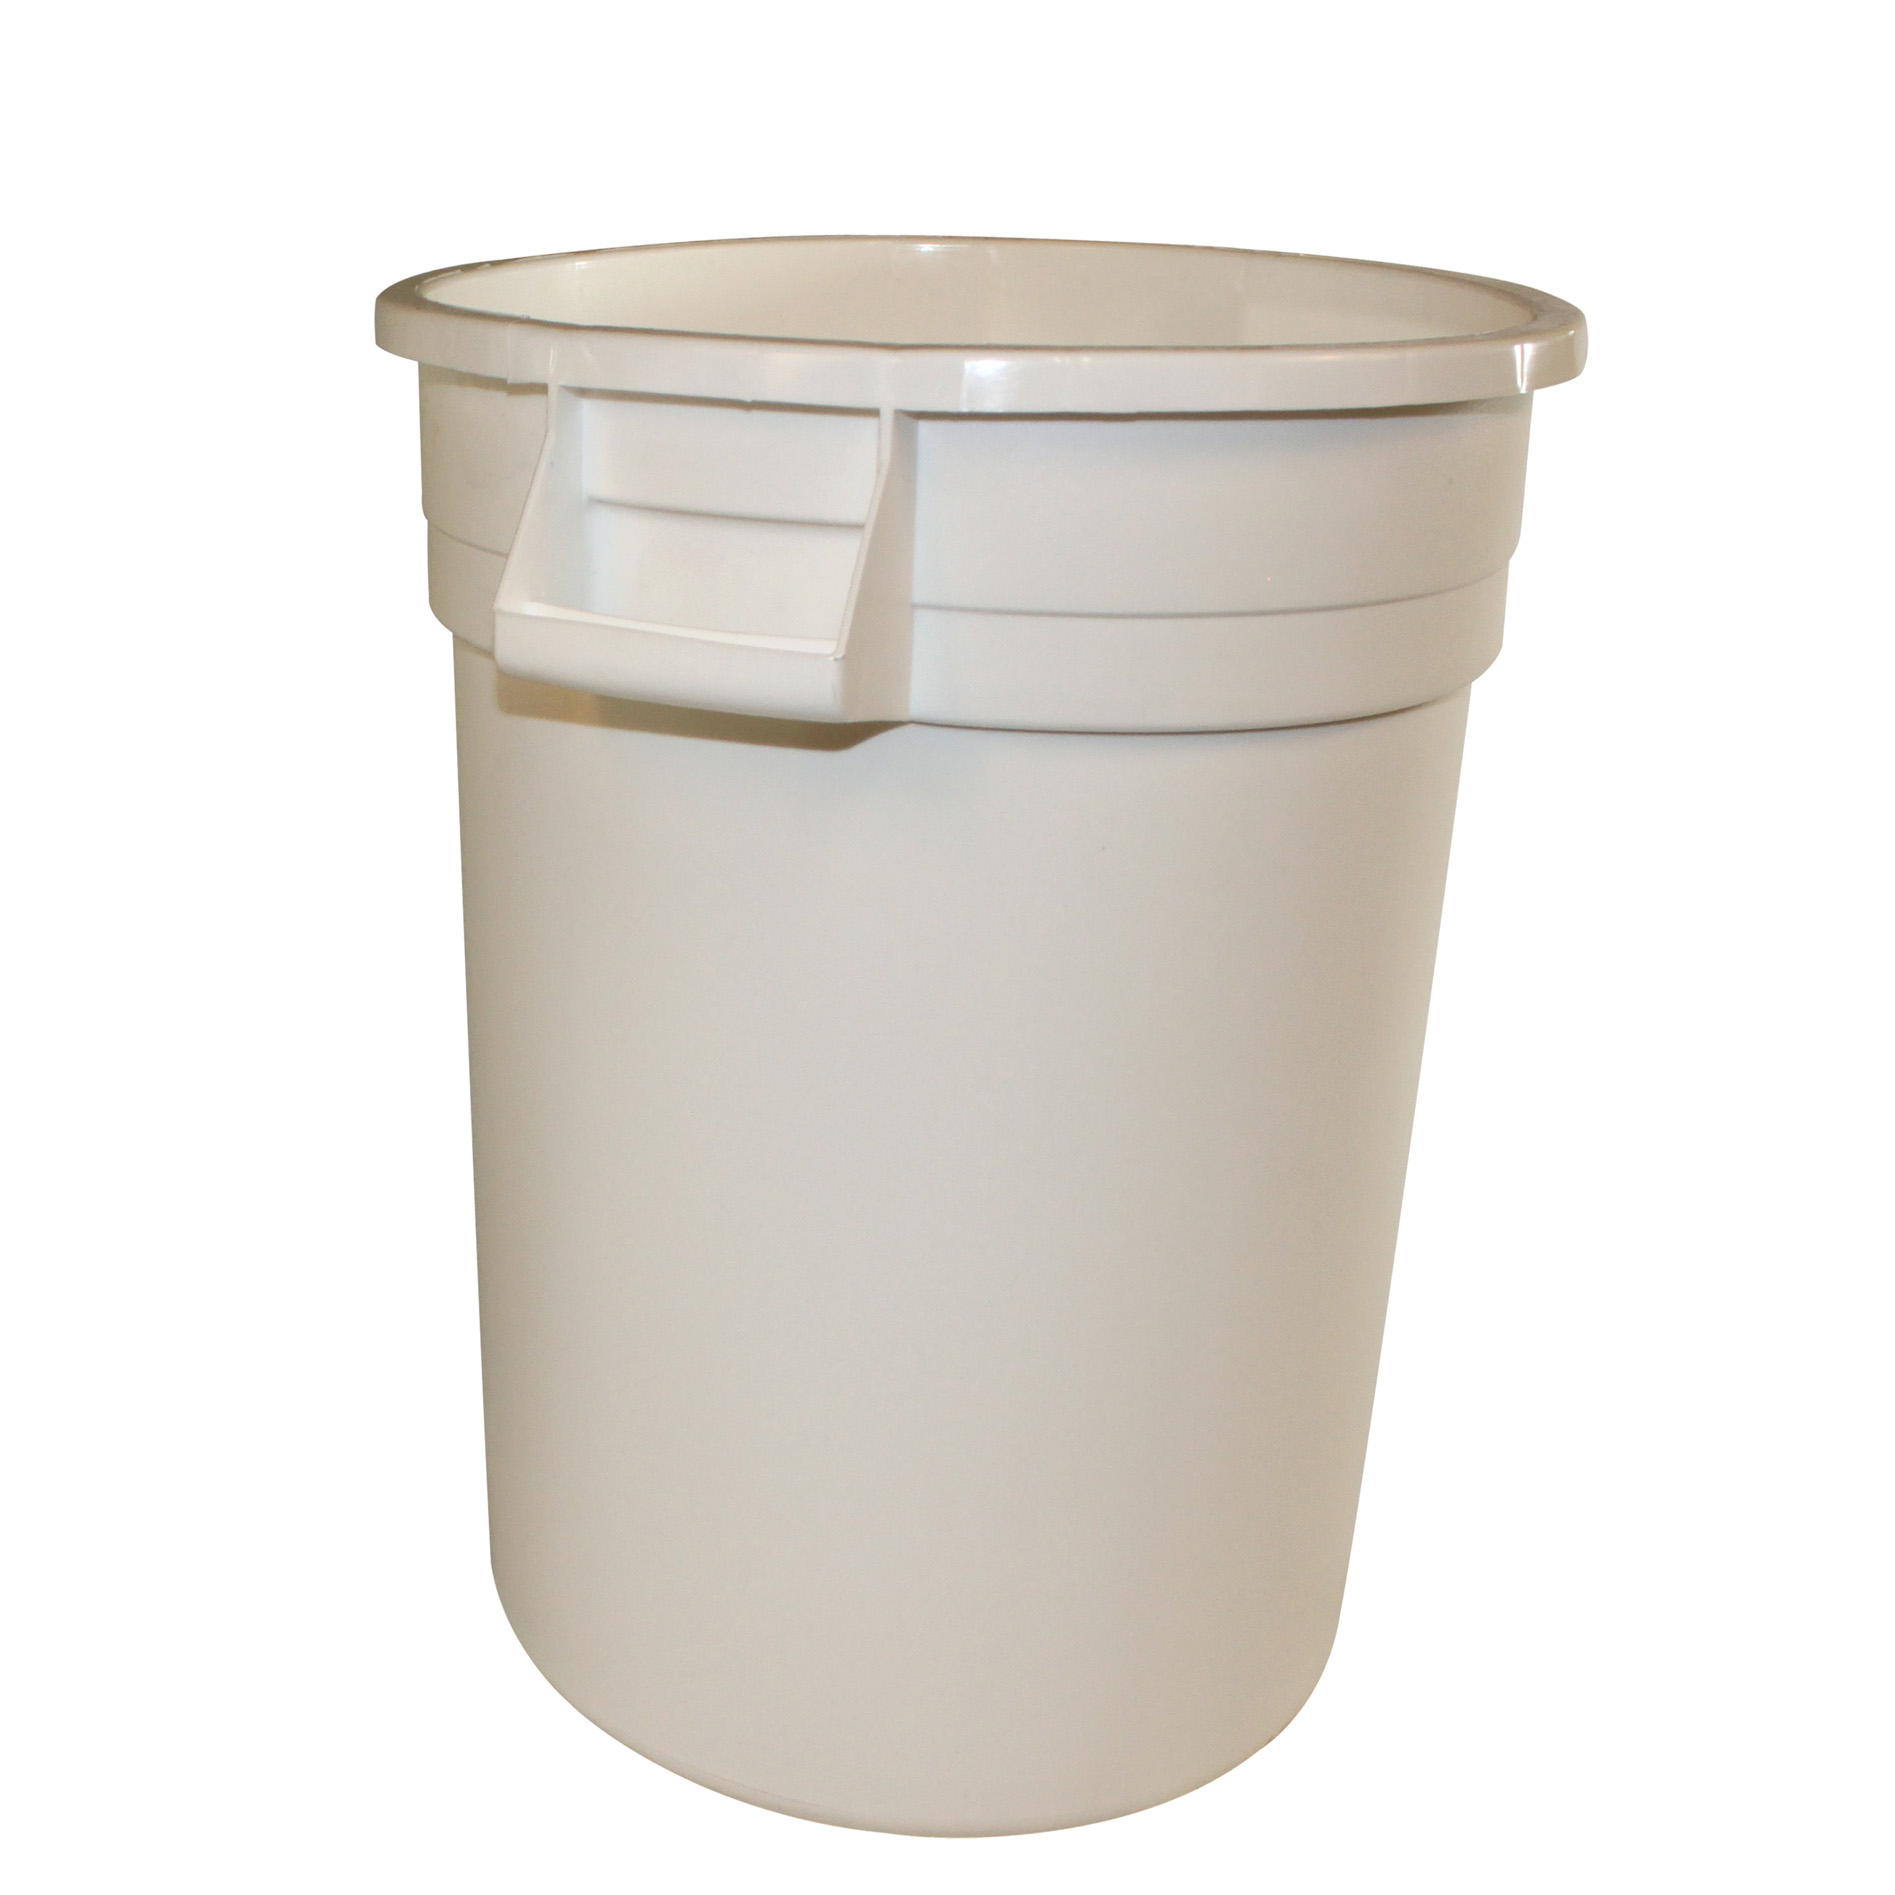 3700-011 Impact Products 7710-1 trash can / container, commercial